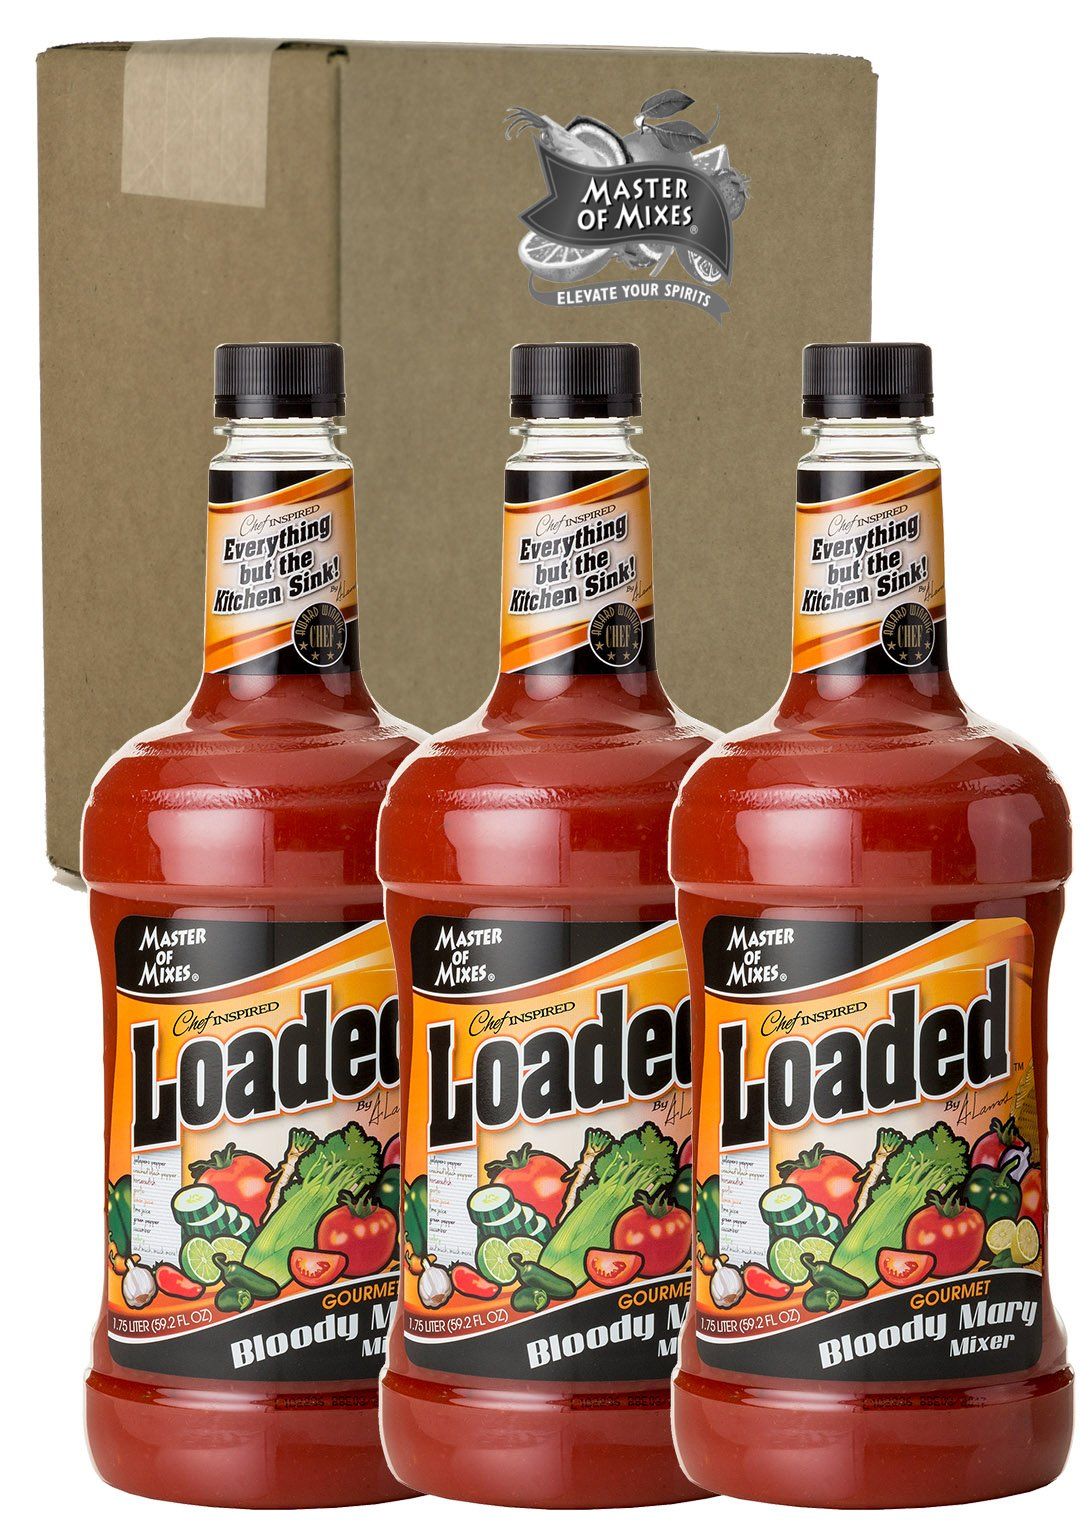 Master of Mixes Loaded Bloody Mary Drink Mix, Ready To Use, 1.75 Liter Bottle (59.2 Fl Oz), Pack of 3